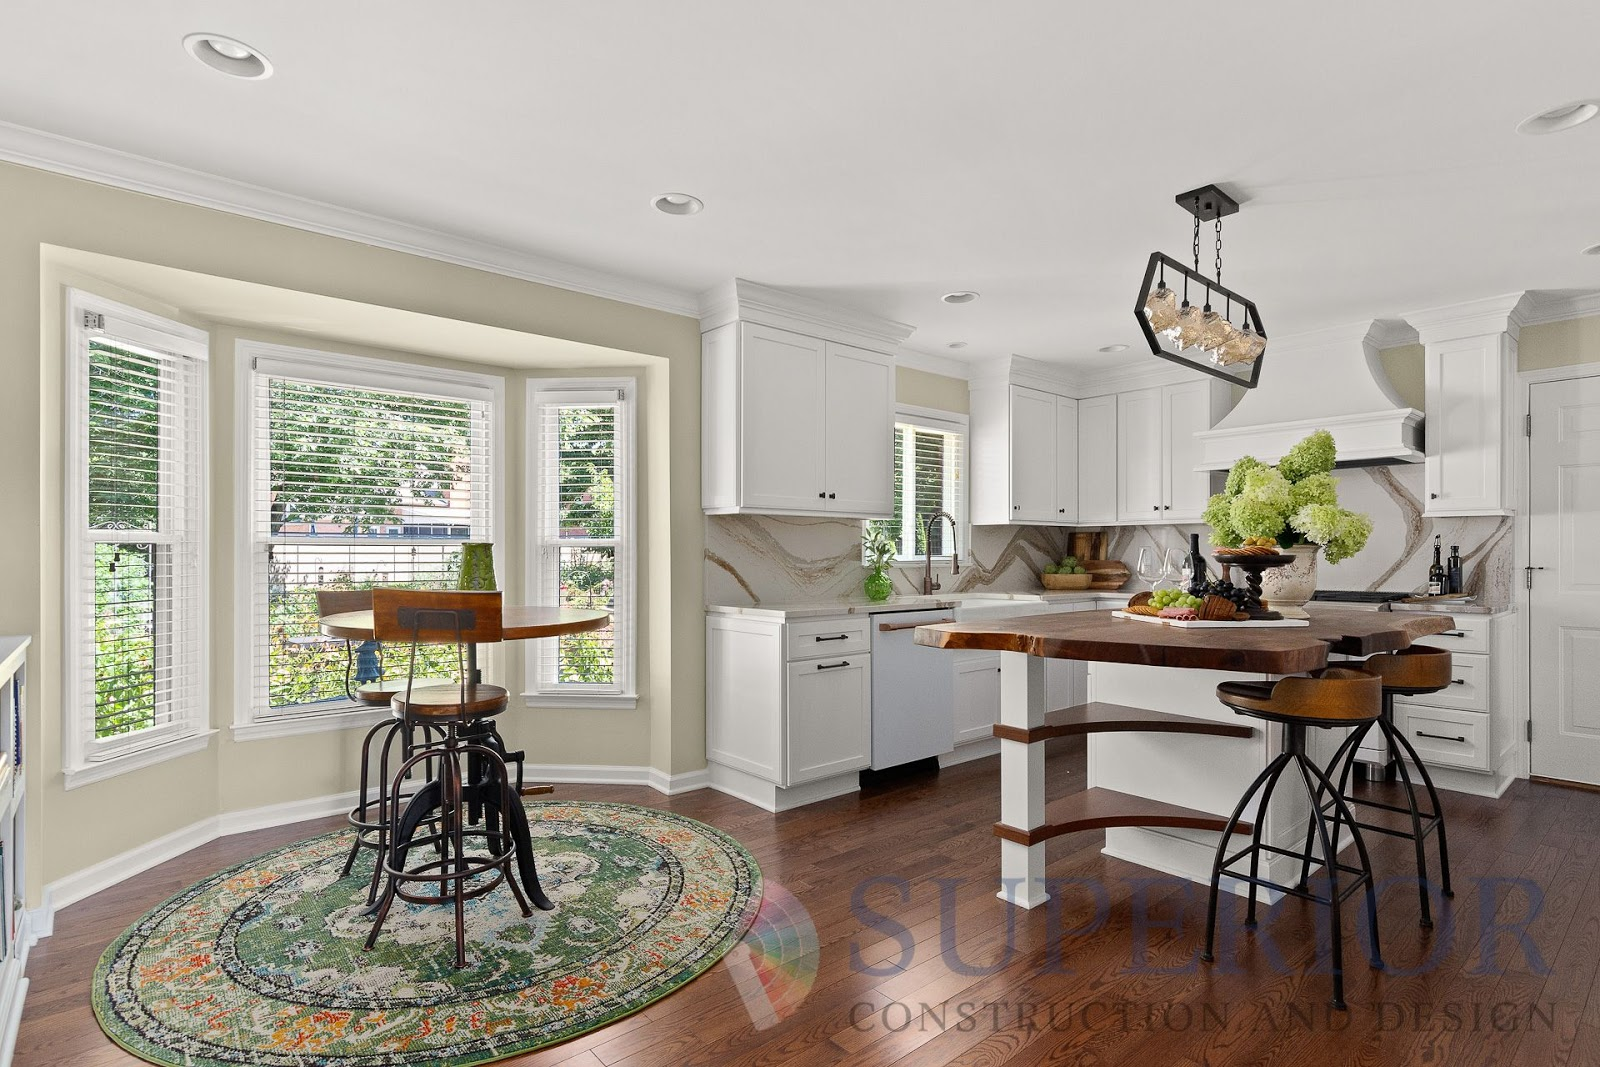 superior construction and design create a multi-functional space kitchen dining with green and brown accents